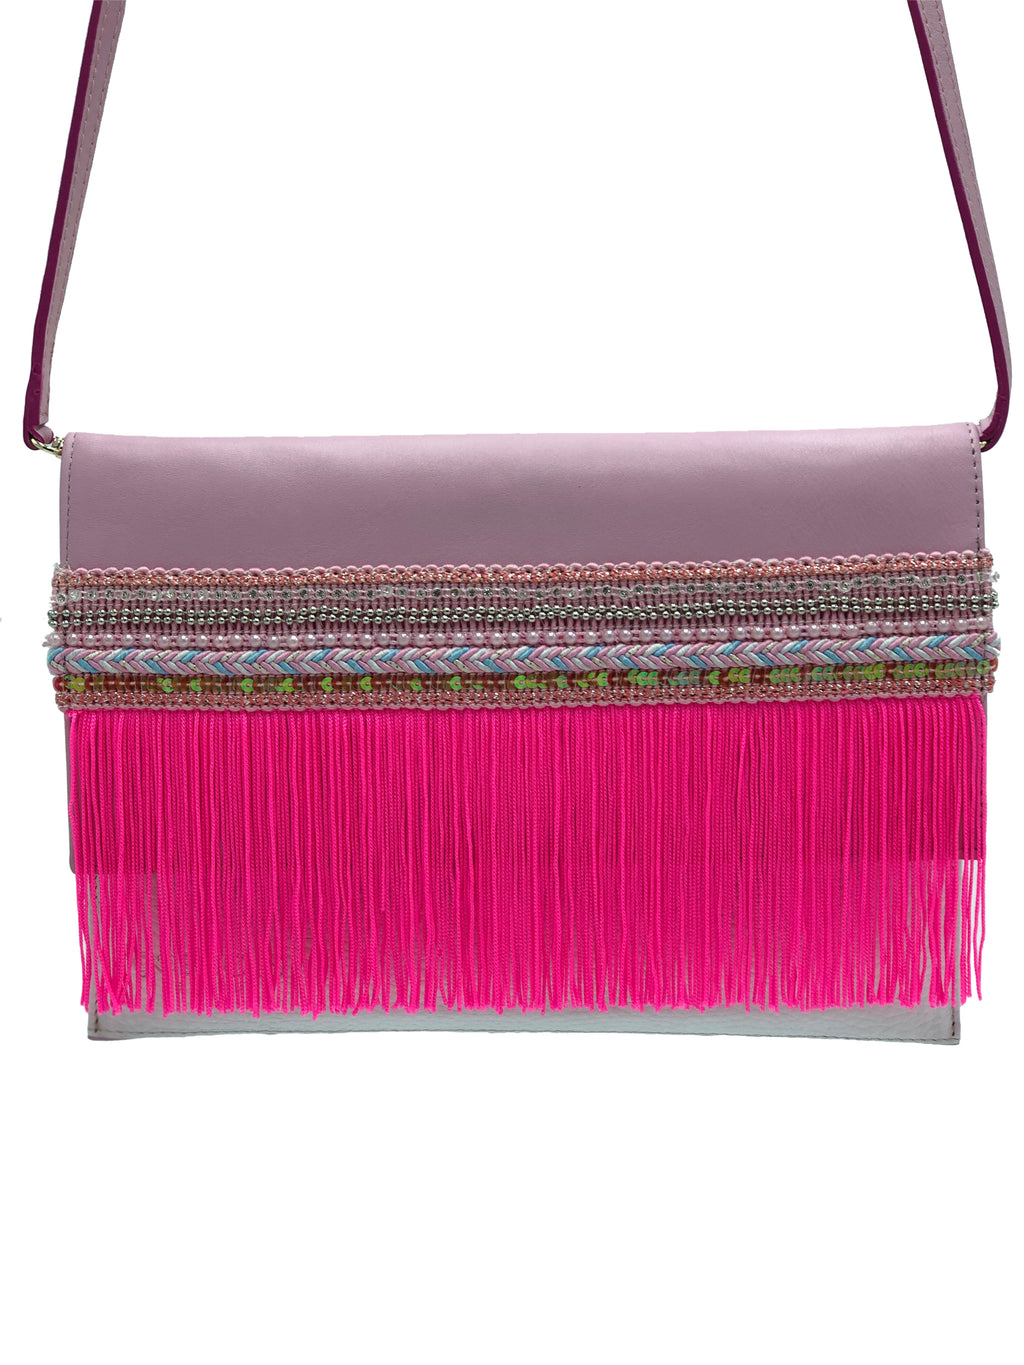 "Pink & white leather clutch with fringes. ""Path to sweetness""."